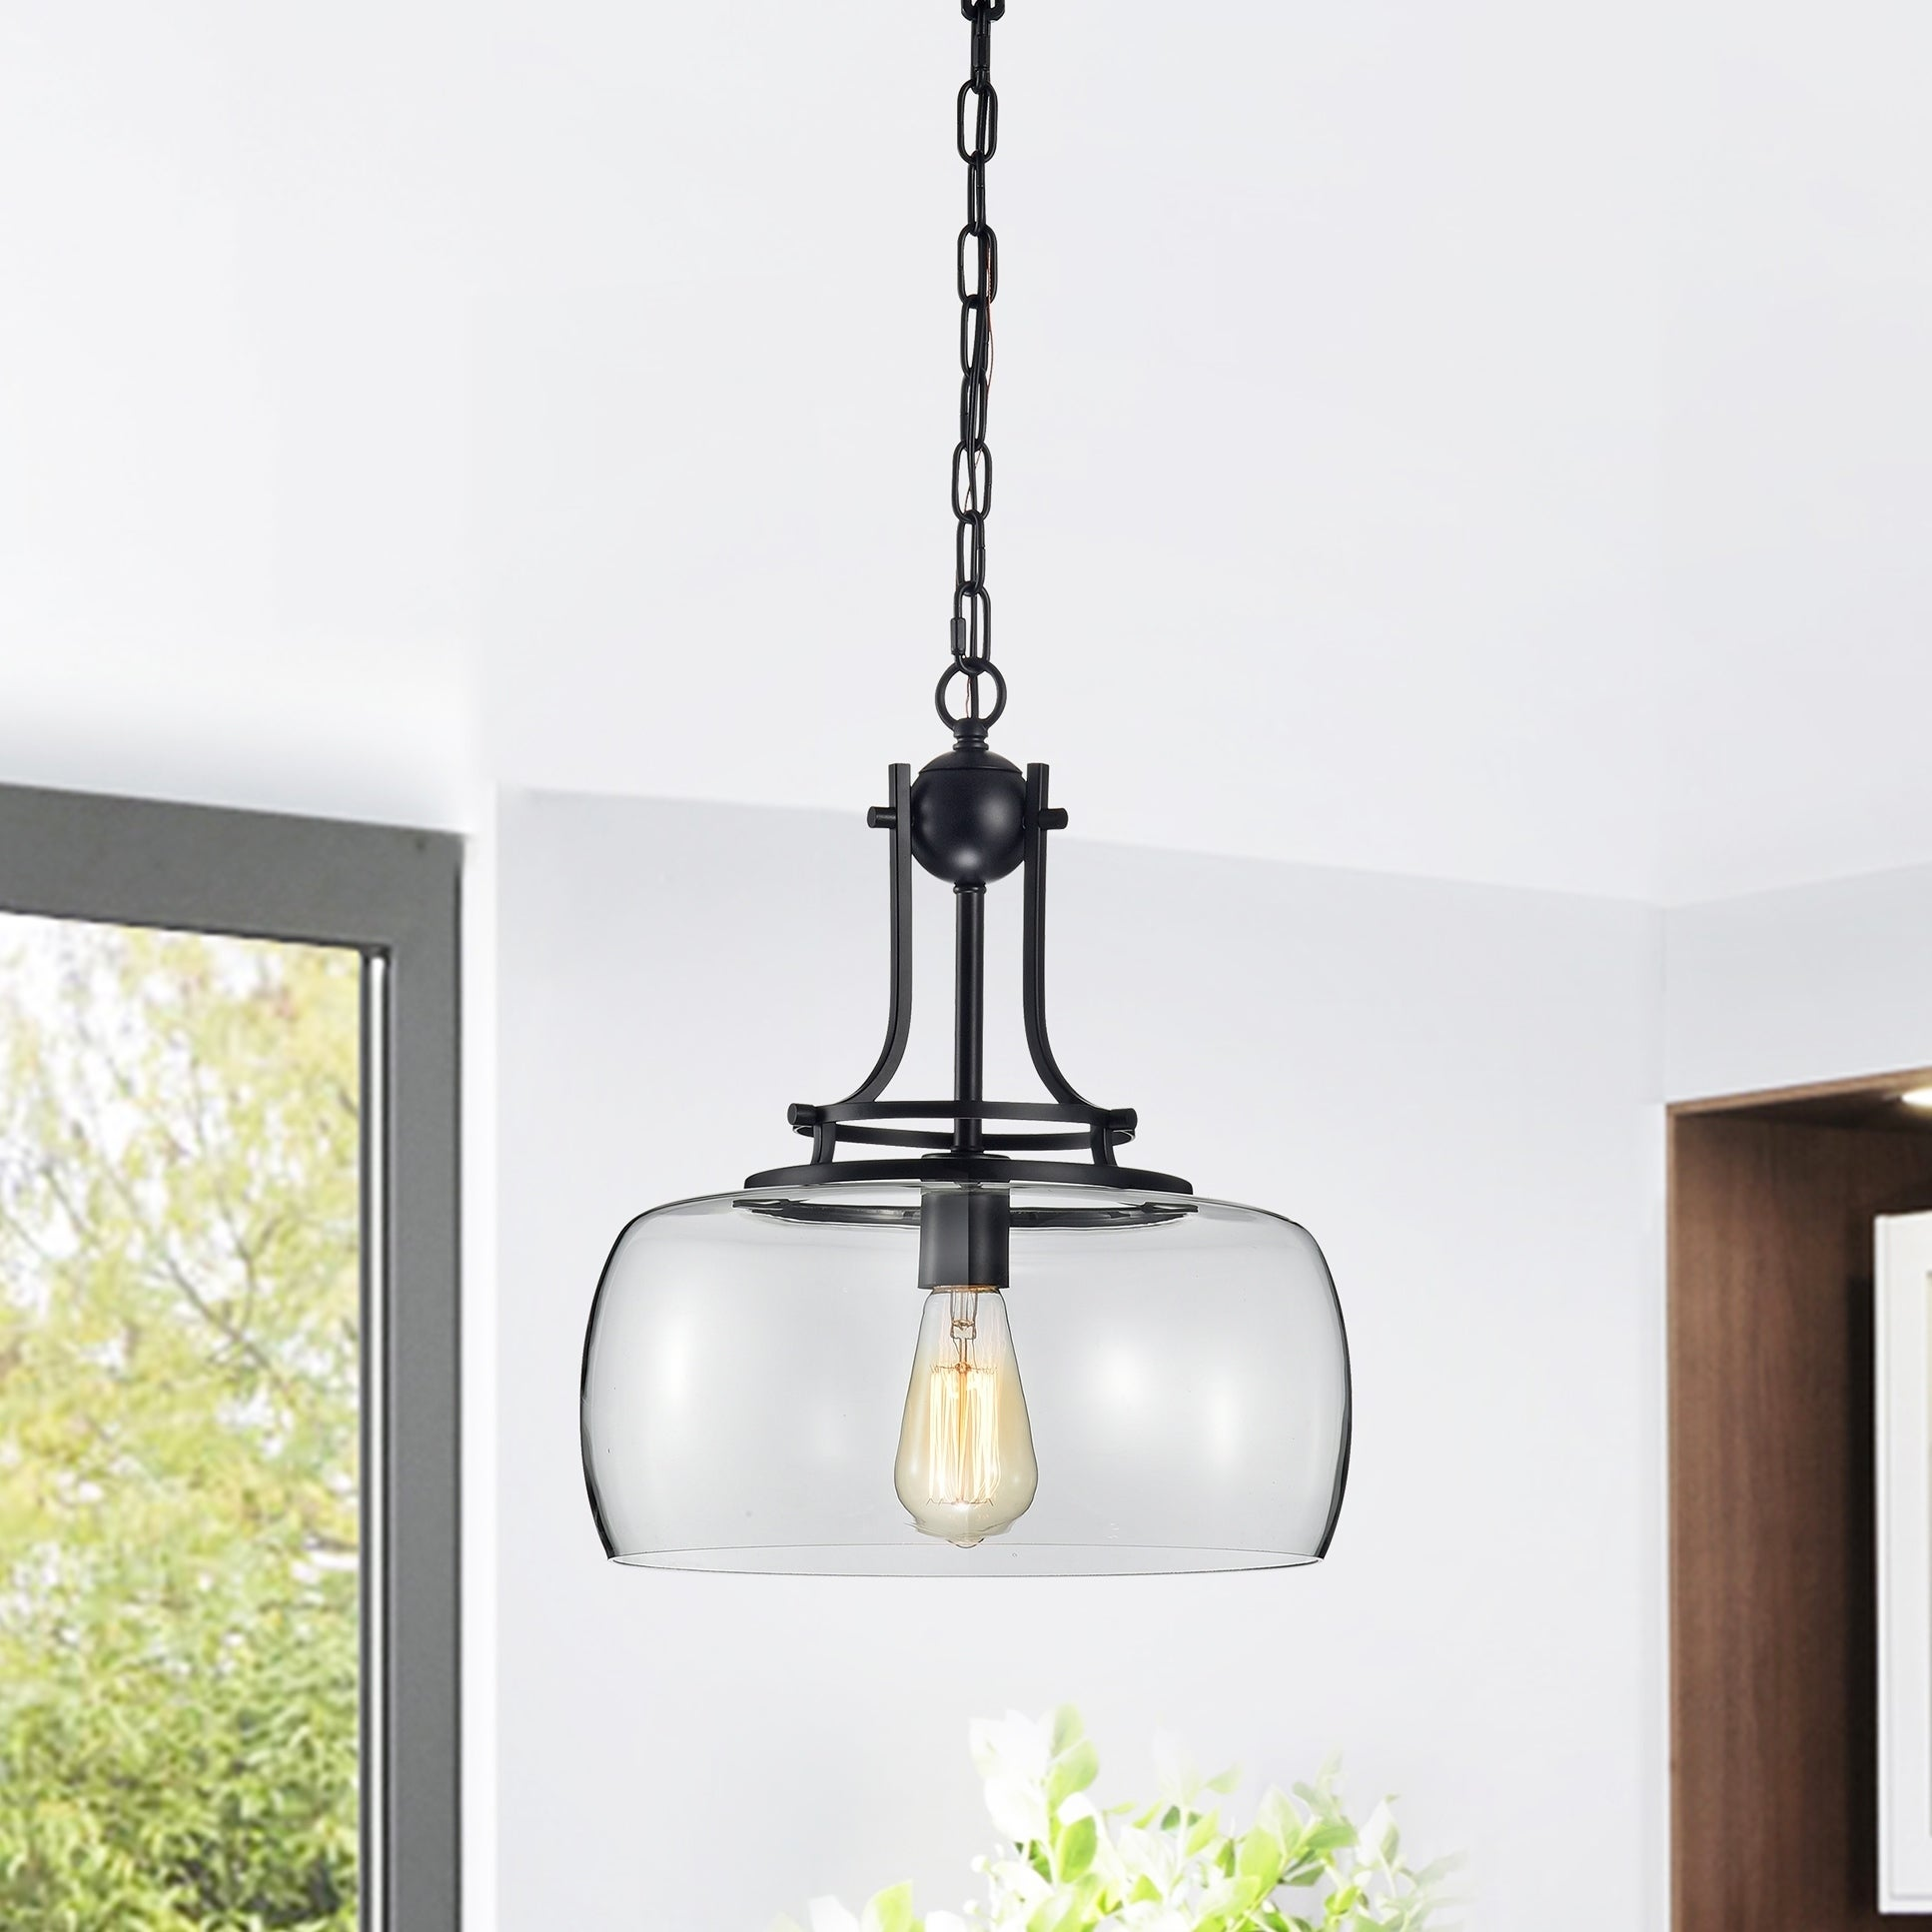 Shop Black Friday Deals On Karha Single Light Matte Black Pendant With Glass Shade Overstock 28546973